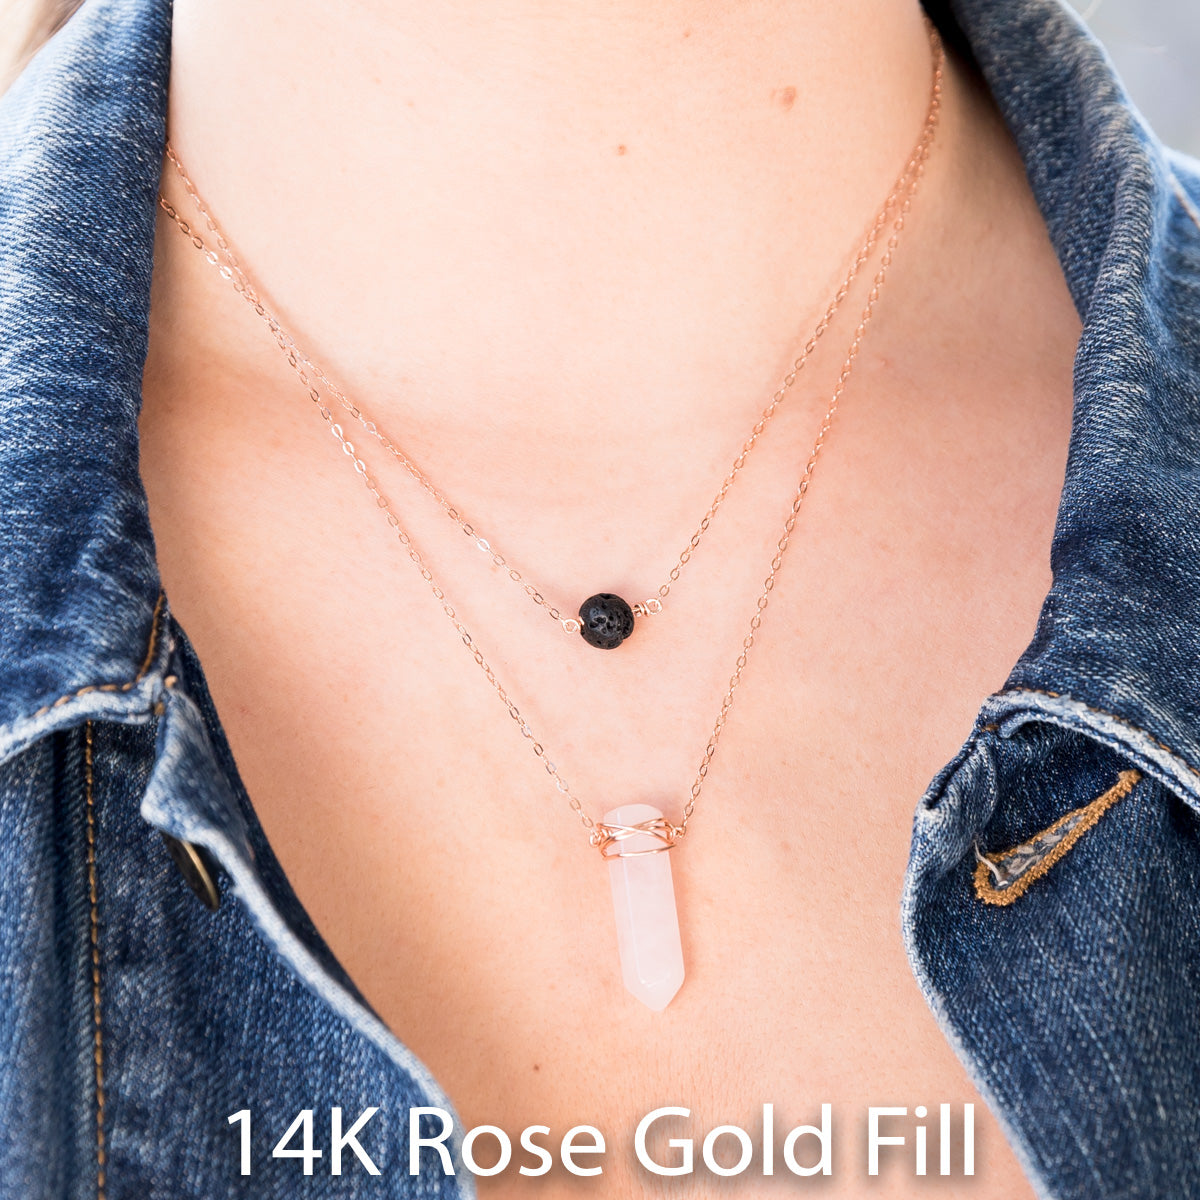 Essential Oil Jewelry, Essential Oil Necklace, Essential Oil Diffuser, Lava Stone, Rose Quartz Crystal, Healing Crystal Jewelry, Rose Quartz Necklace, Wire wrapped Rose Quartz, Layered Necklace, Layering Necklace, Dainty Necklace, Minimal Necklace, Bohemian, Gemstone Necklace, Liz.Beth Jewelry Co.